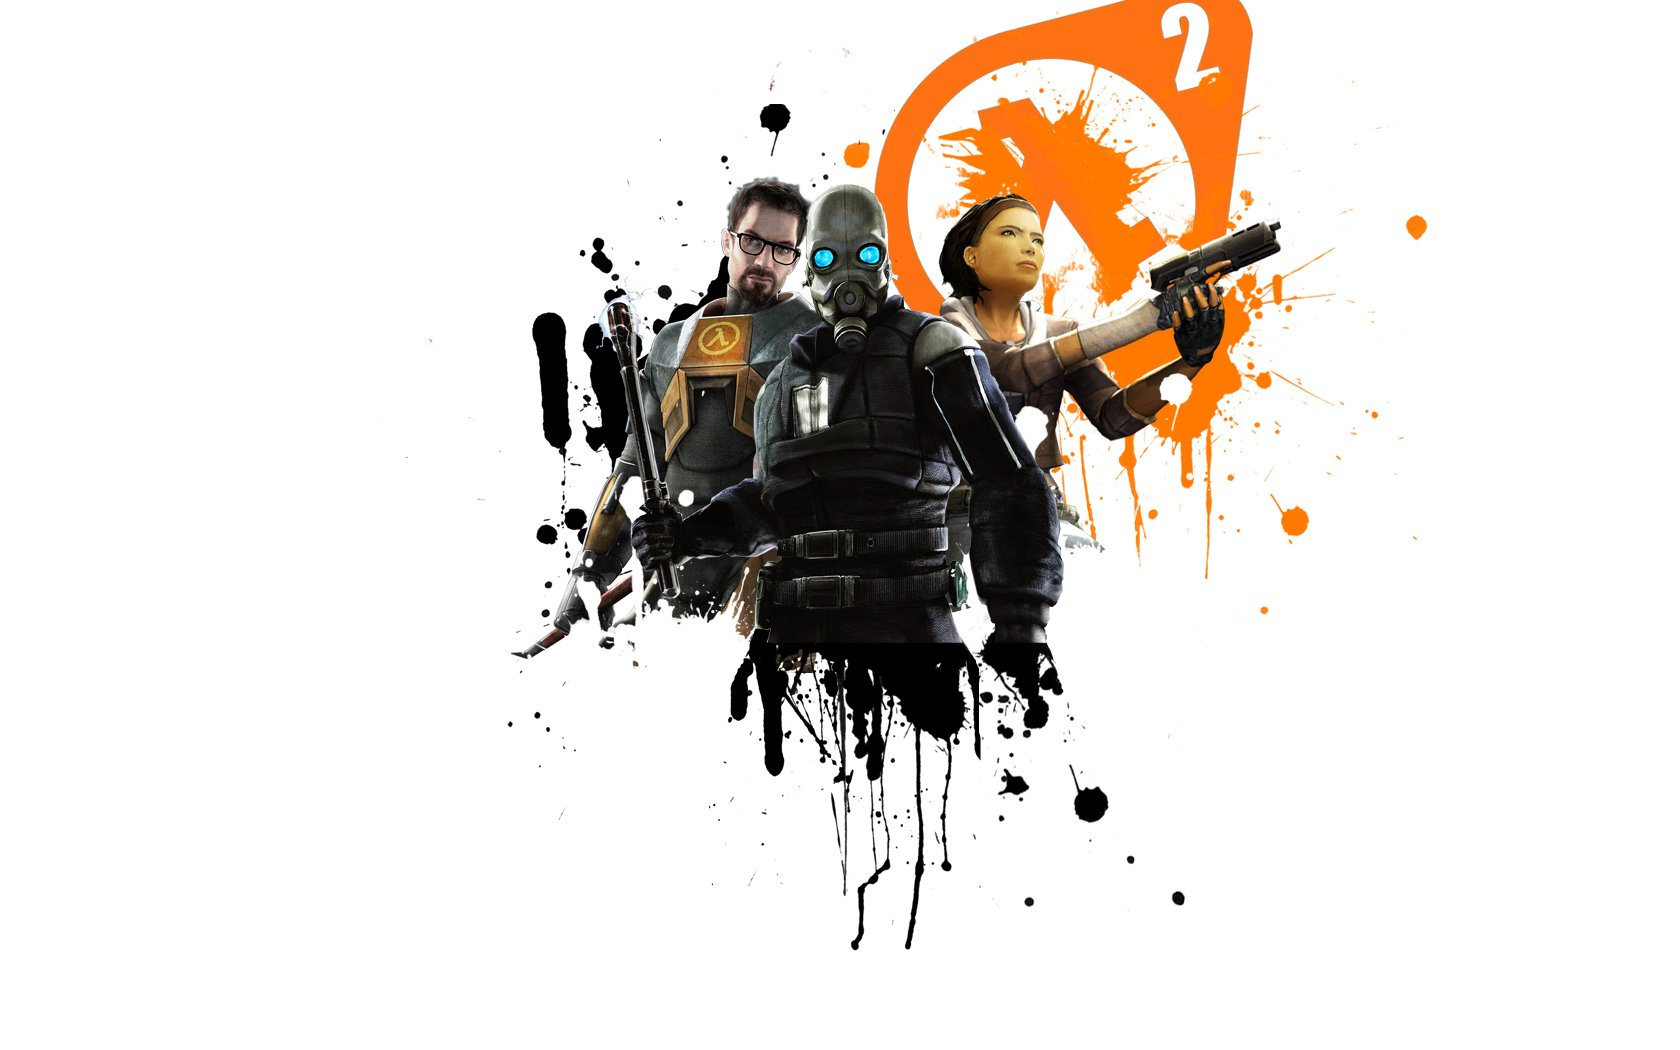 Video Games Gordon Freeman Combine Alyx Vance Half Life 2 Simple